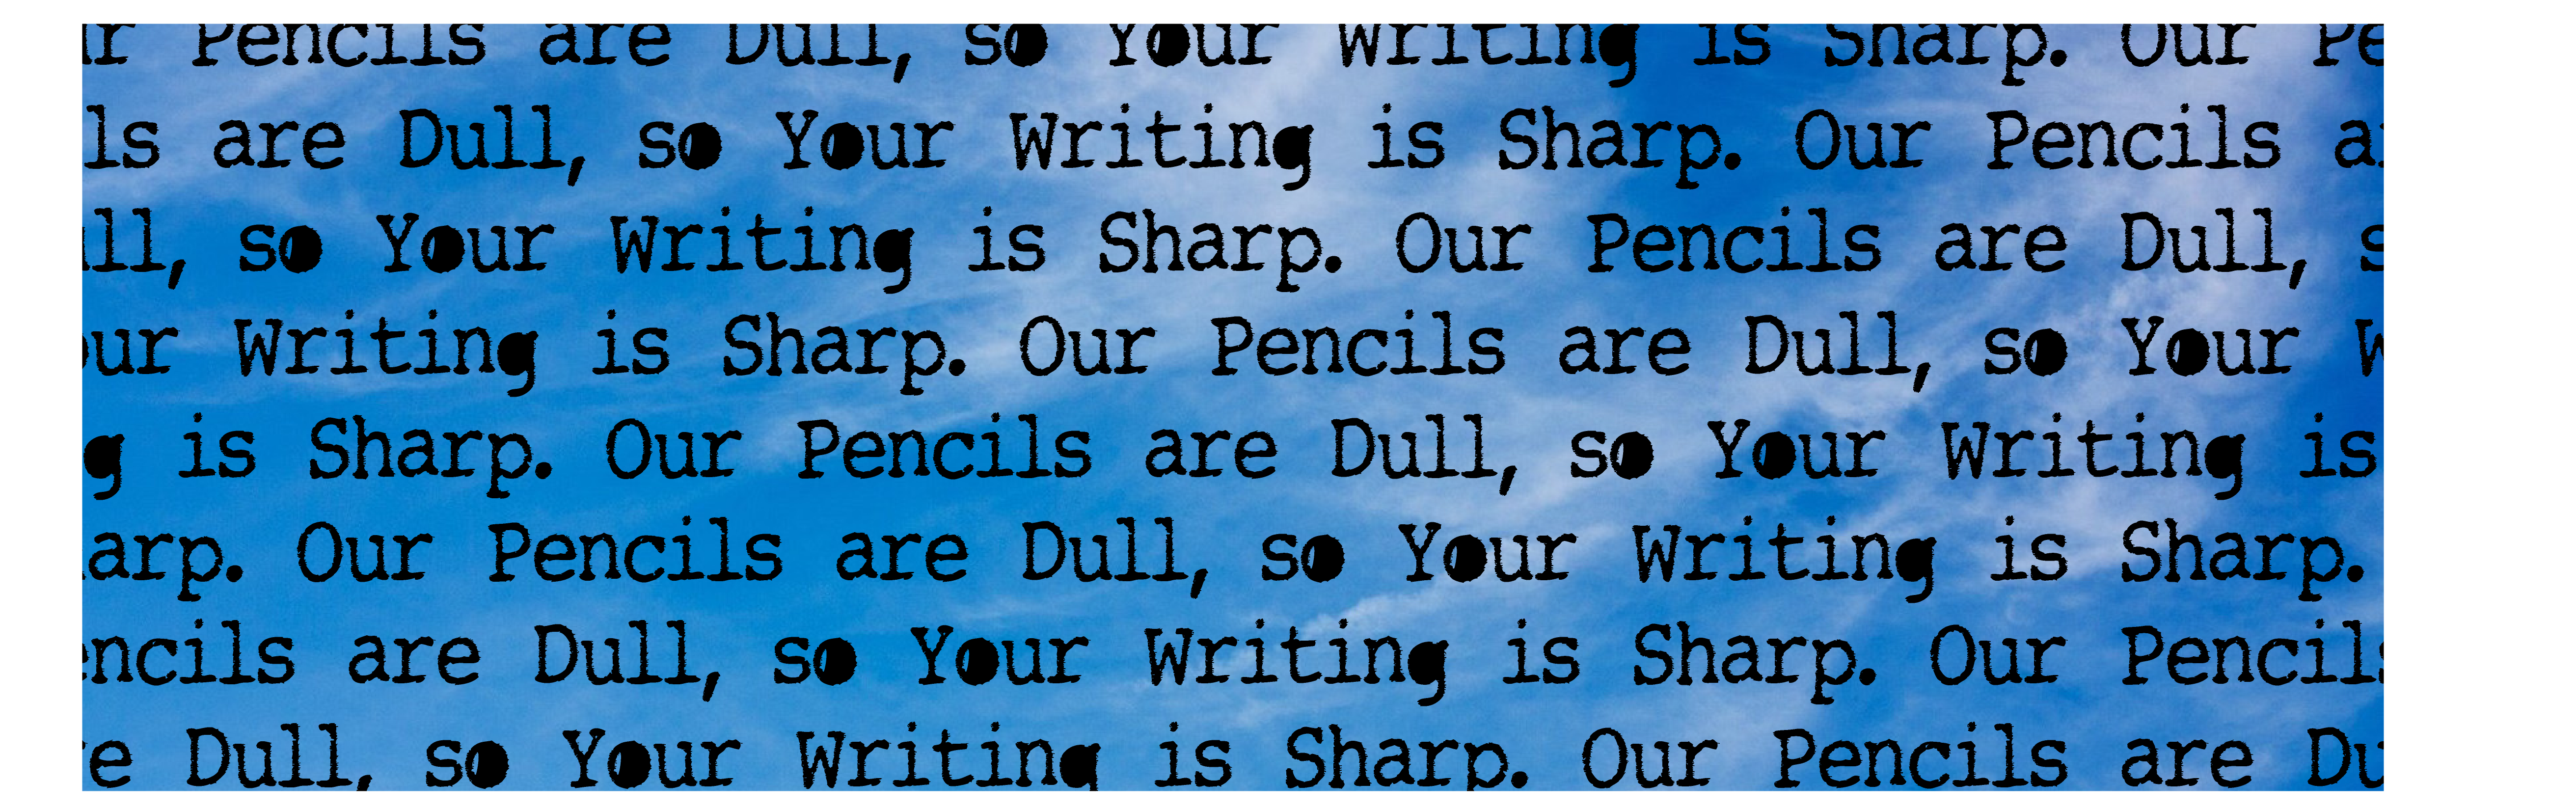 Dull Pencils Twitter page header photo